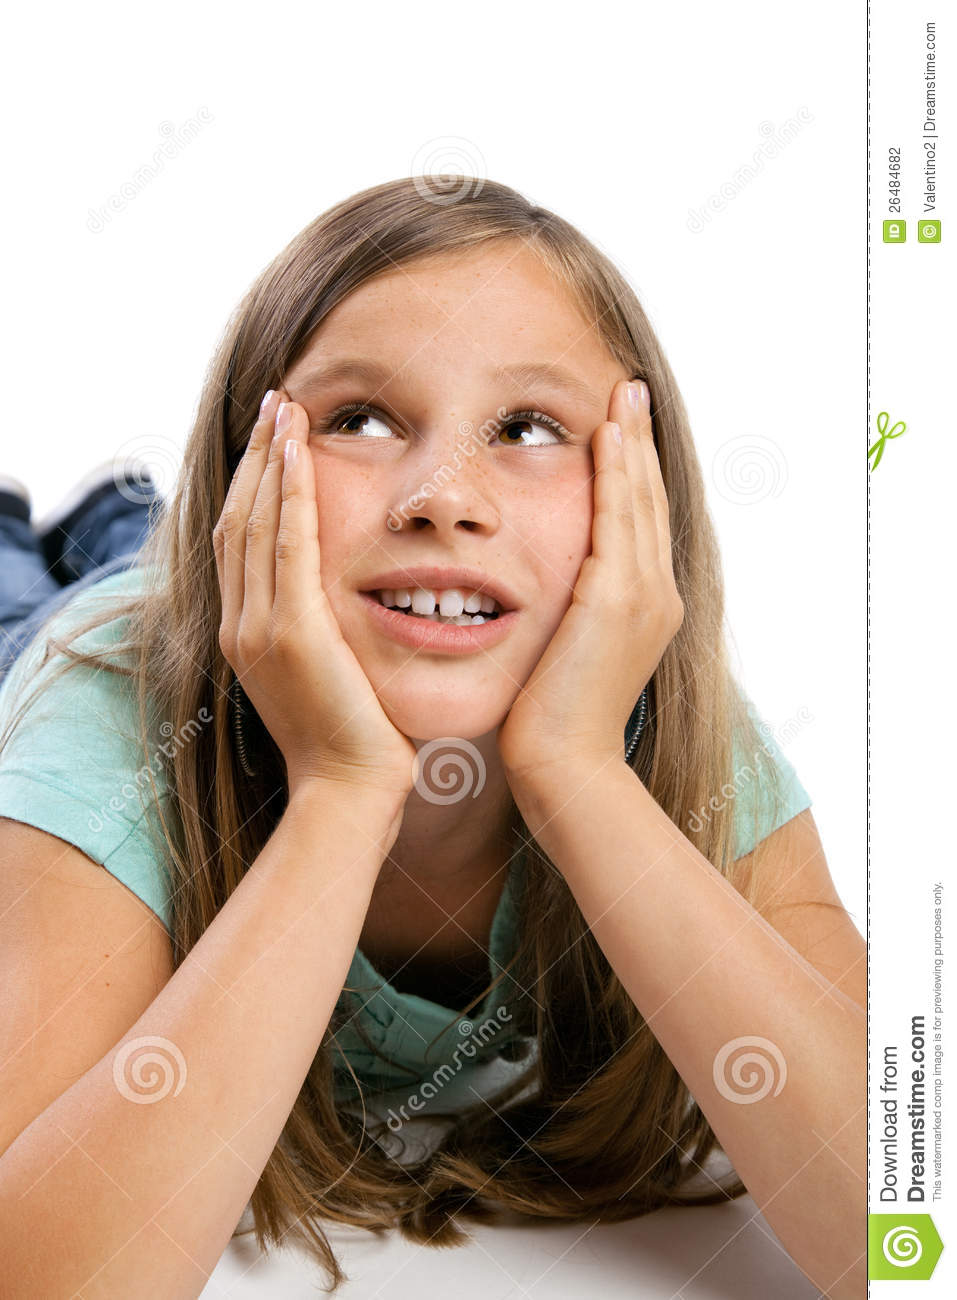 Young Girl Looking Up Stock Photography